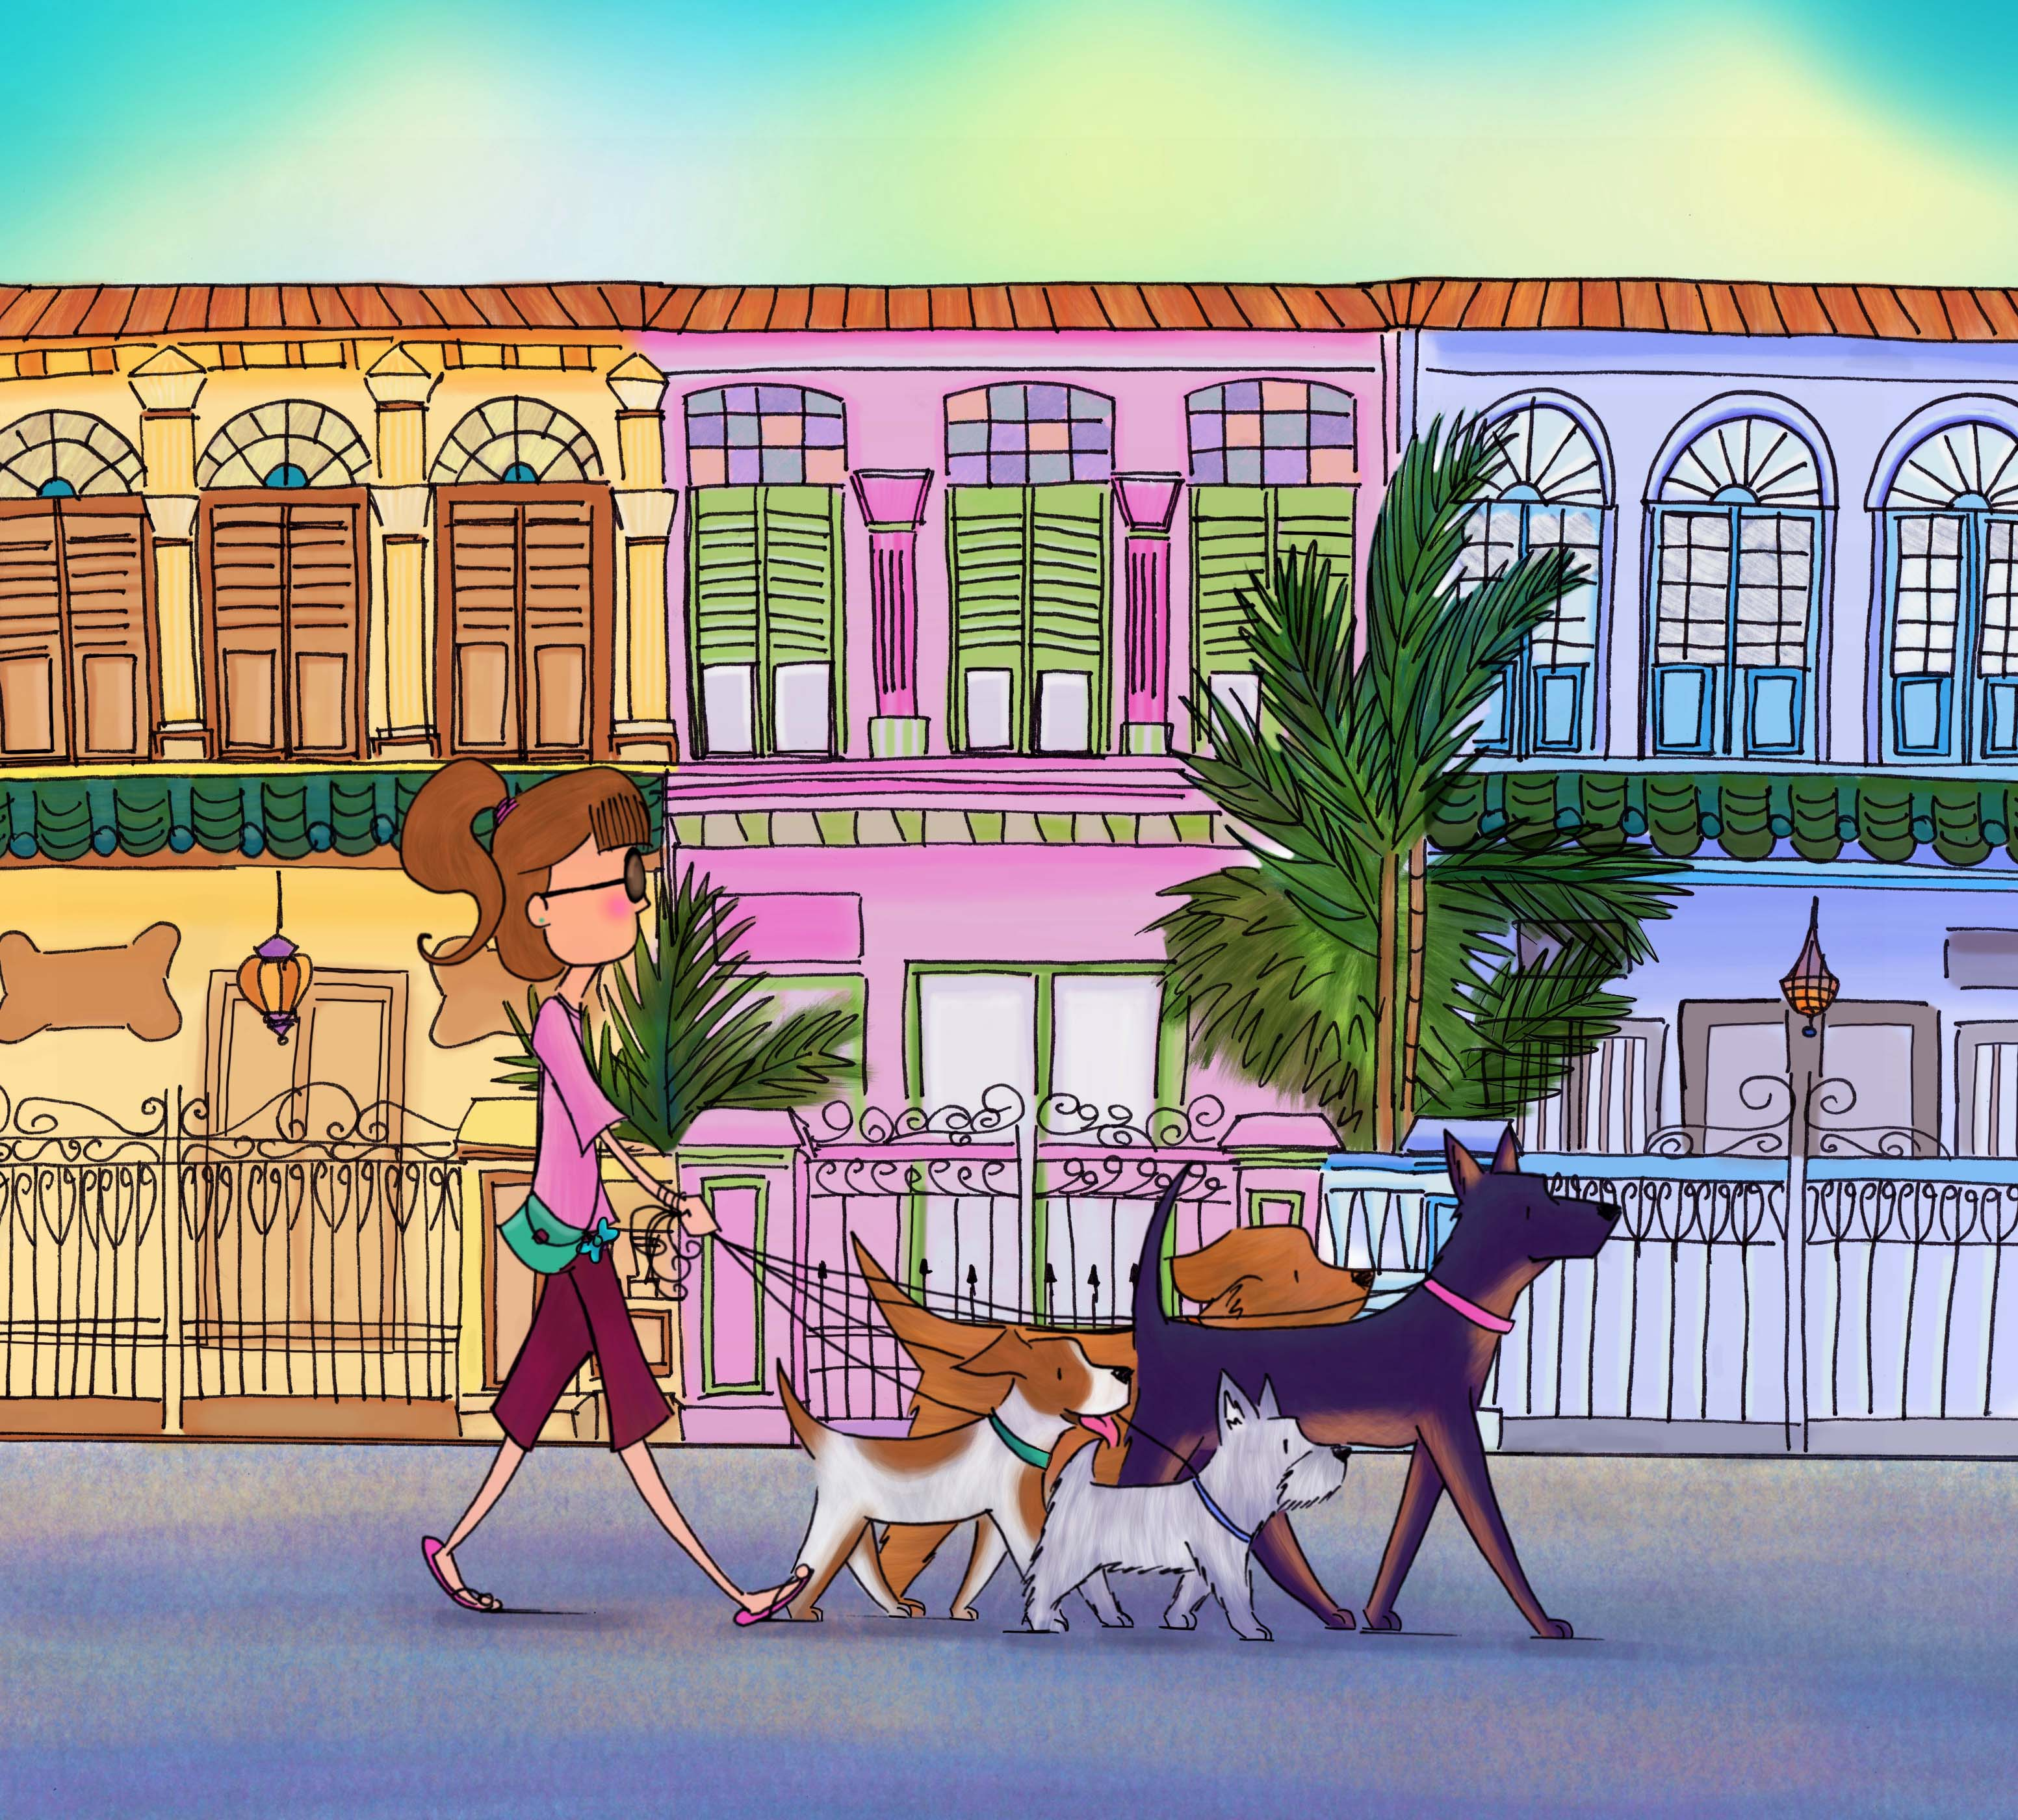 Doggie walking amongst the shophouses